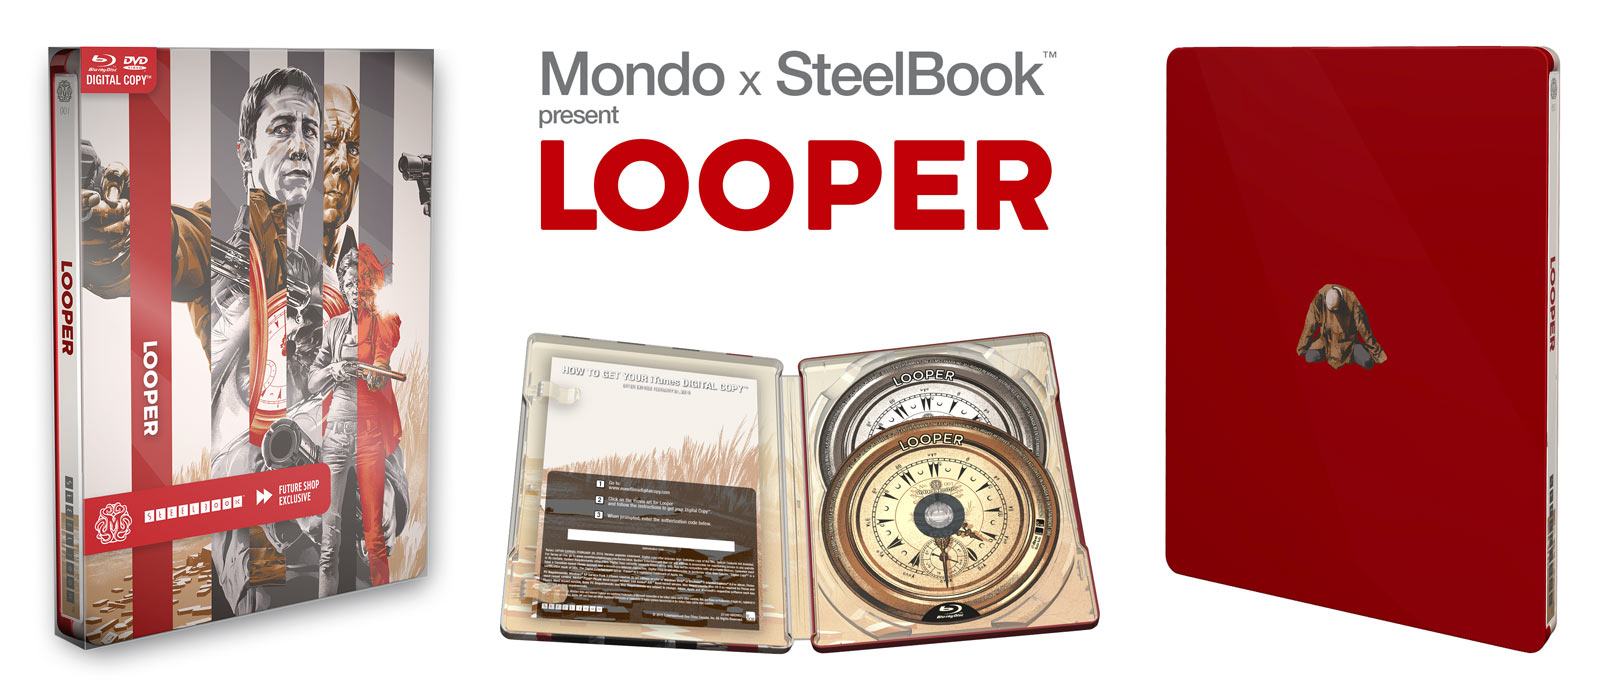 Looper Mondo SteelBook Available February 24